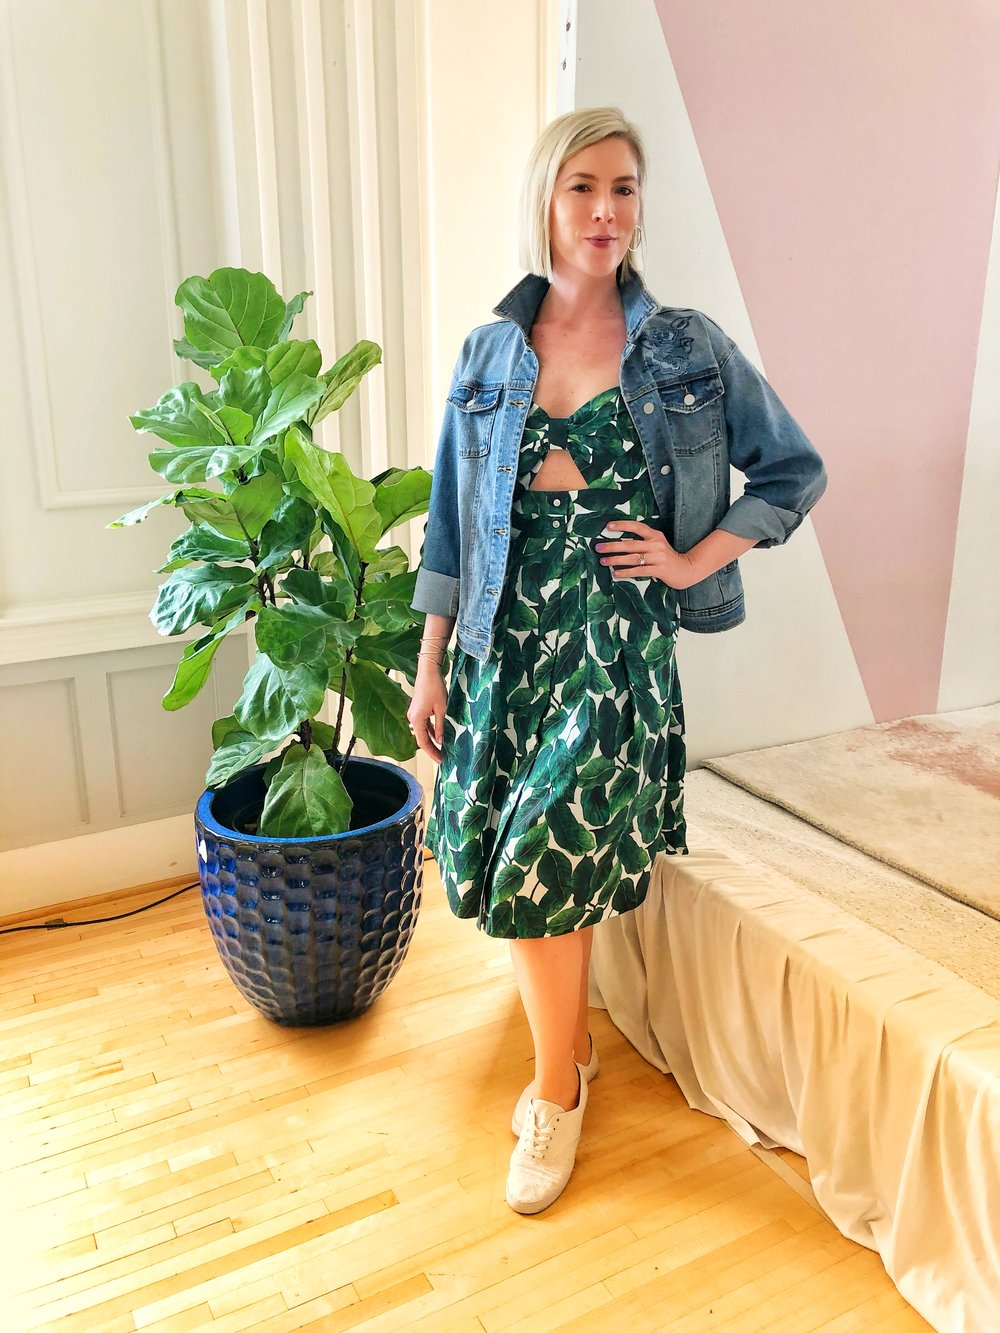 Milly Banana Leaf Dress from Rent the Runway featured by top US fashion blog, The Borrowed Babes - Banana Leaf Trend